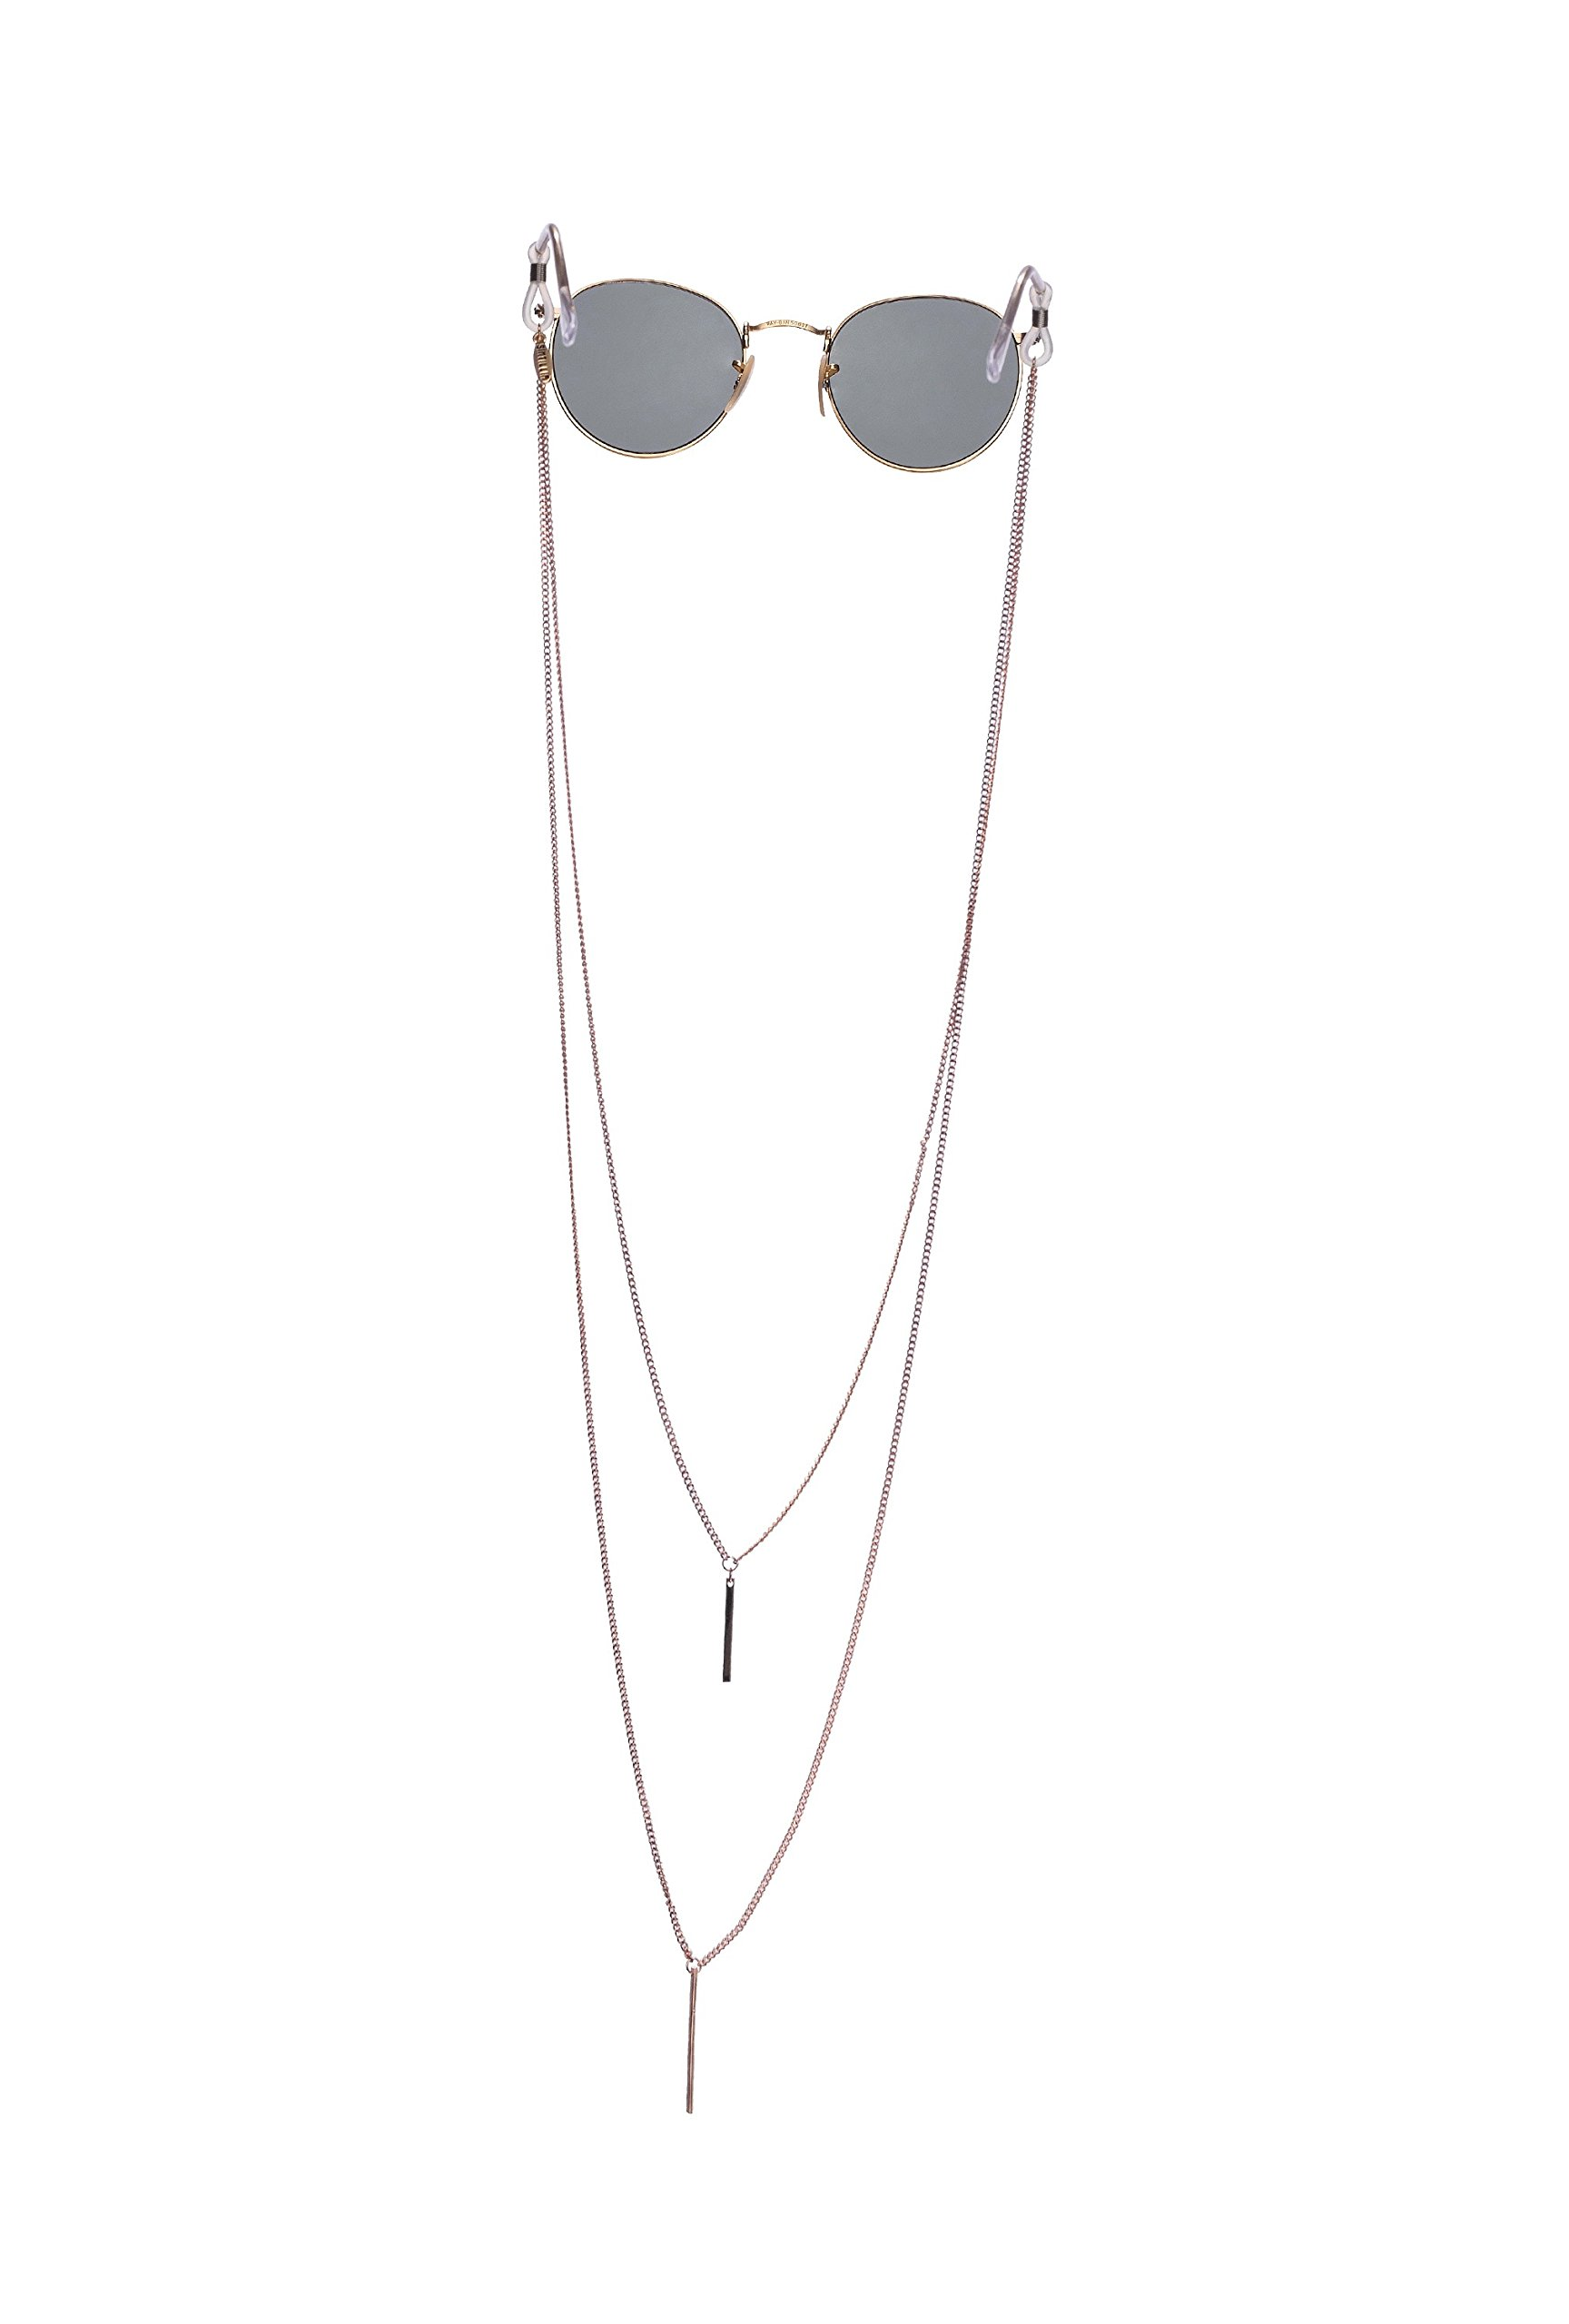 Sintillia Barre Backlace Statement Sunglass Strap, Glasses Chain, Eyeglass Cord (Rose Gold with Black Attachments)